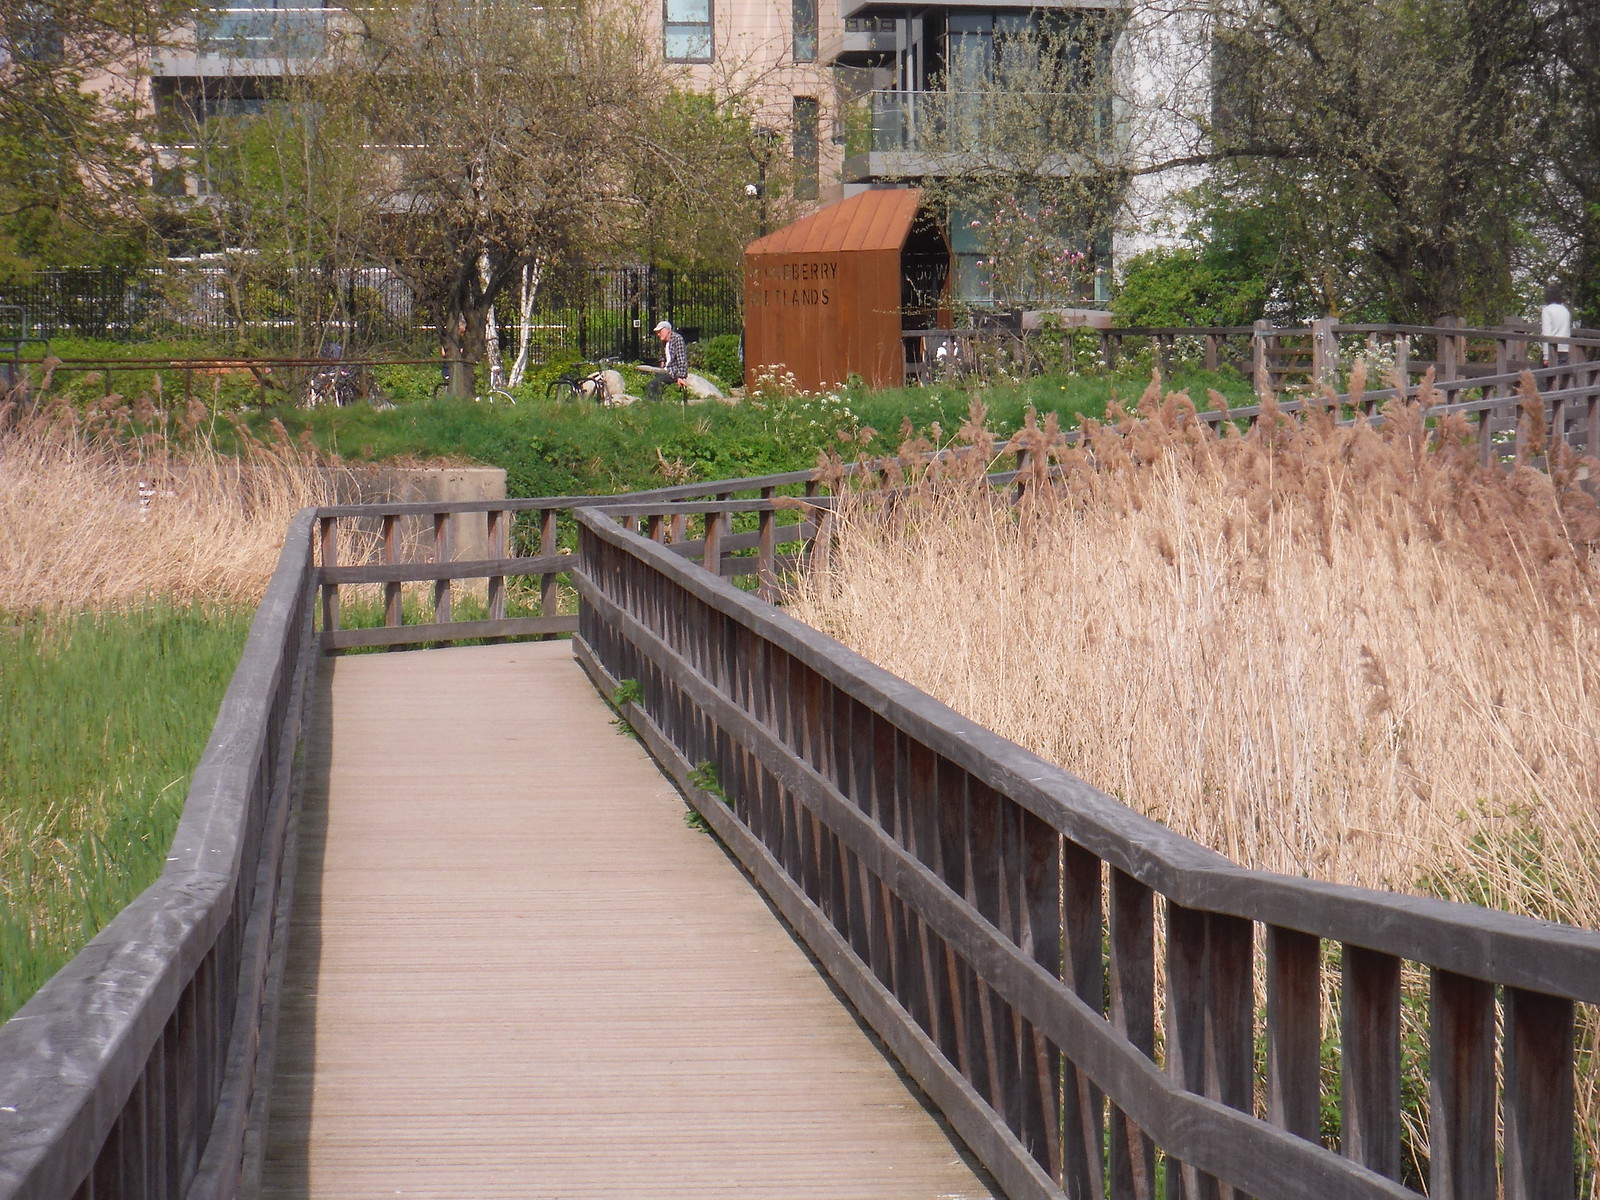 Boardwalk through Reed Beds (II), Woodberry Wetlands SWC Short Walk 26 - Woodberry Wetlands (Stoke Newington Reservoirs)